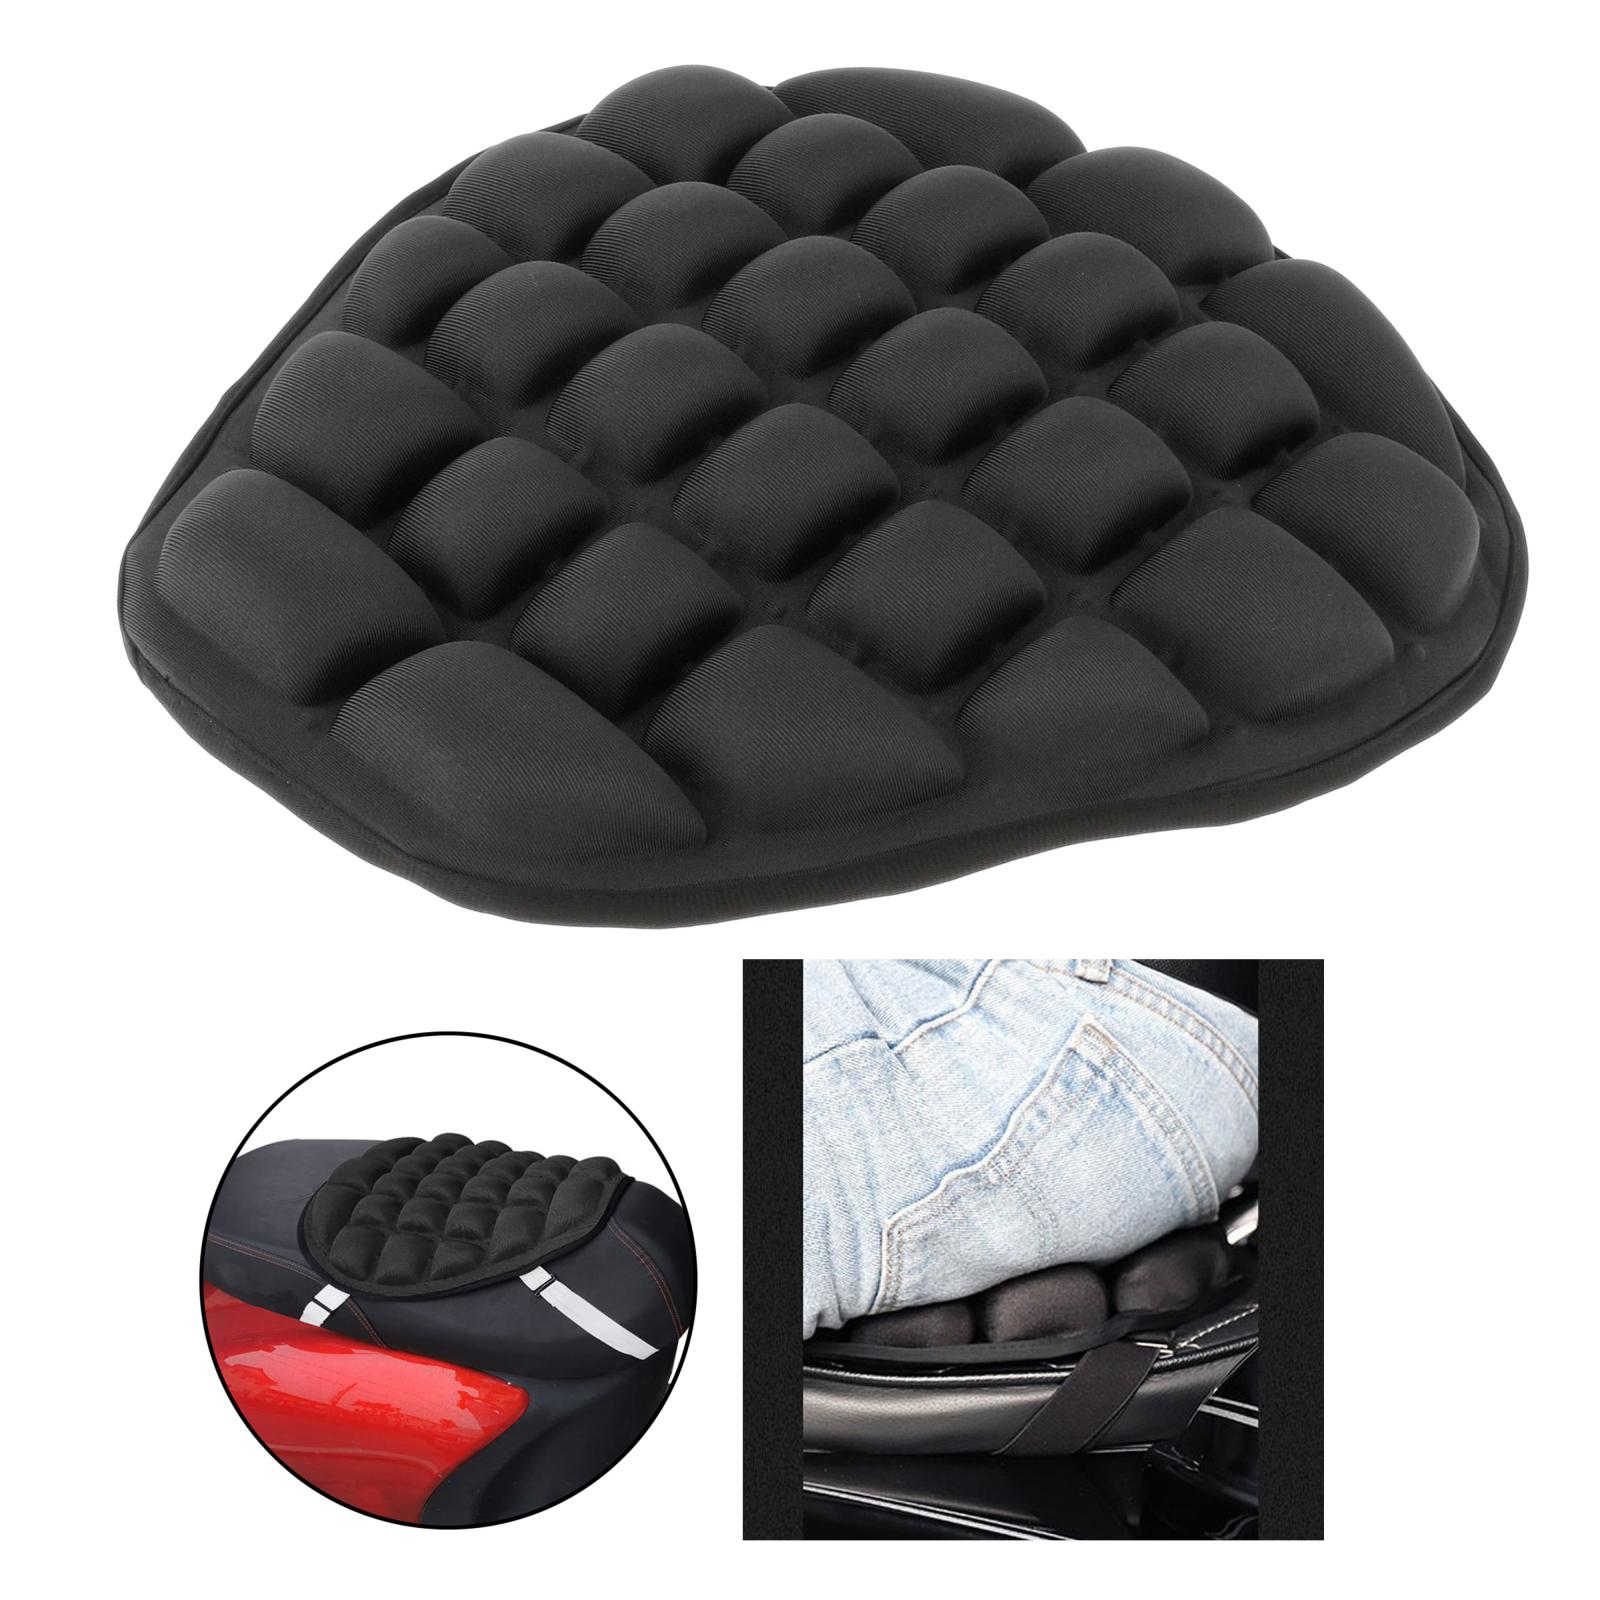 Motorcycle Seat Cover Air Pad Motorcycle Air Seat Cushion Cover Pressure Relief  Protector for Cruiser Sport Touring Saddles